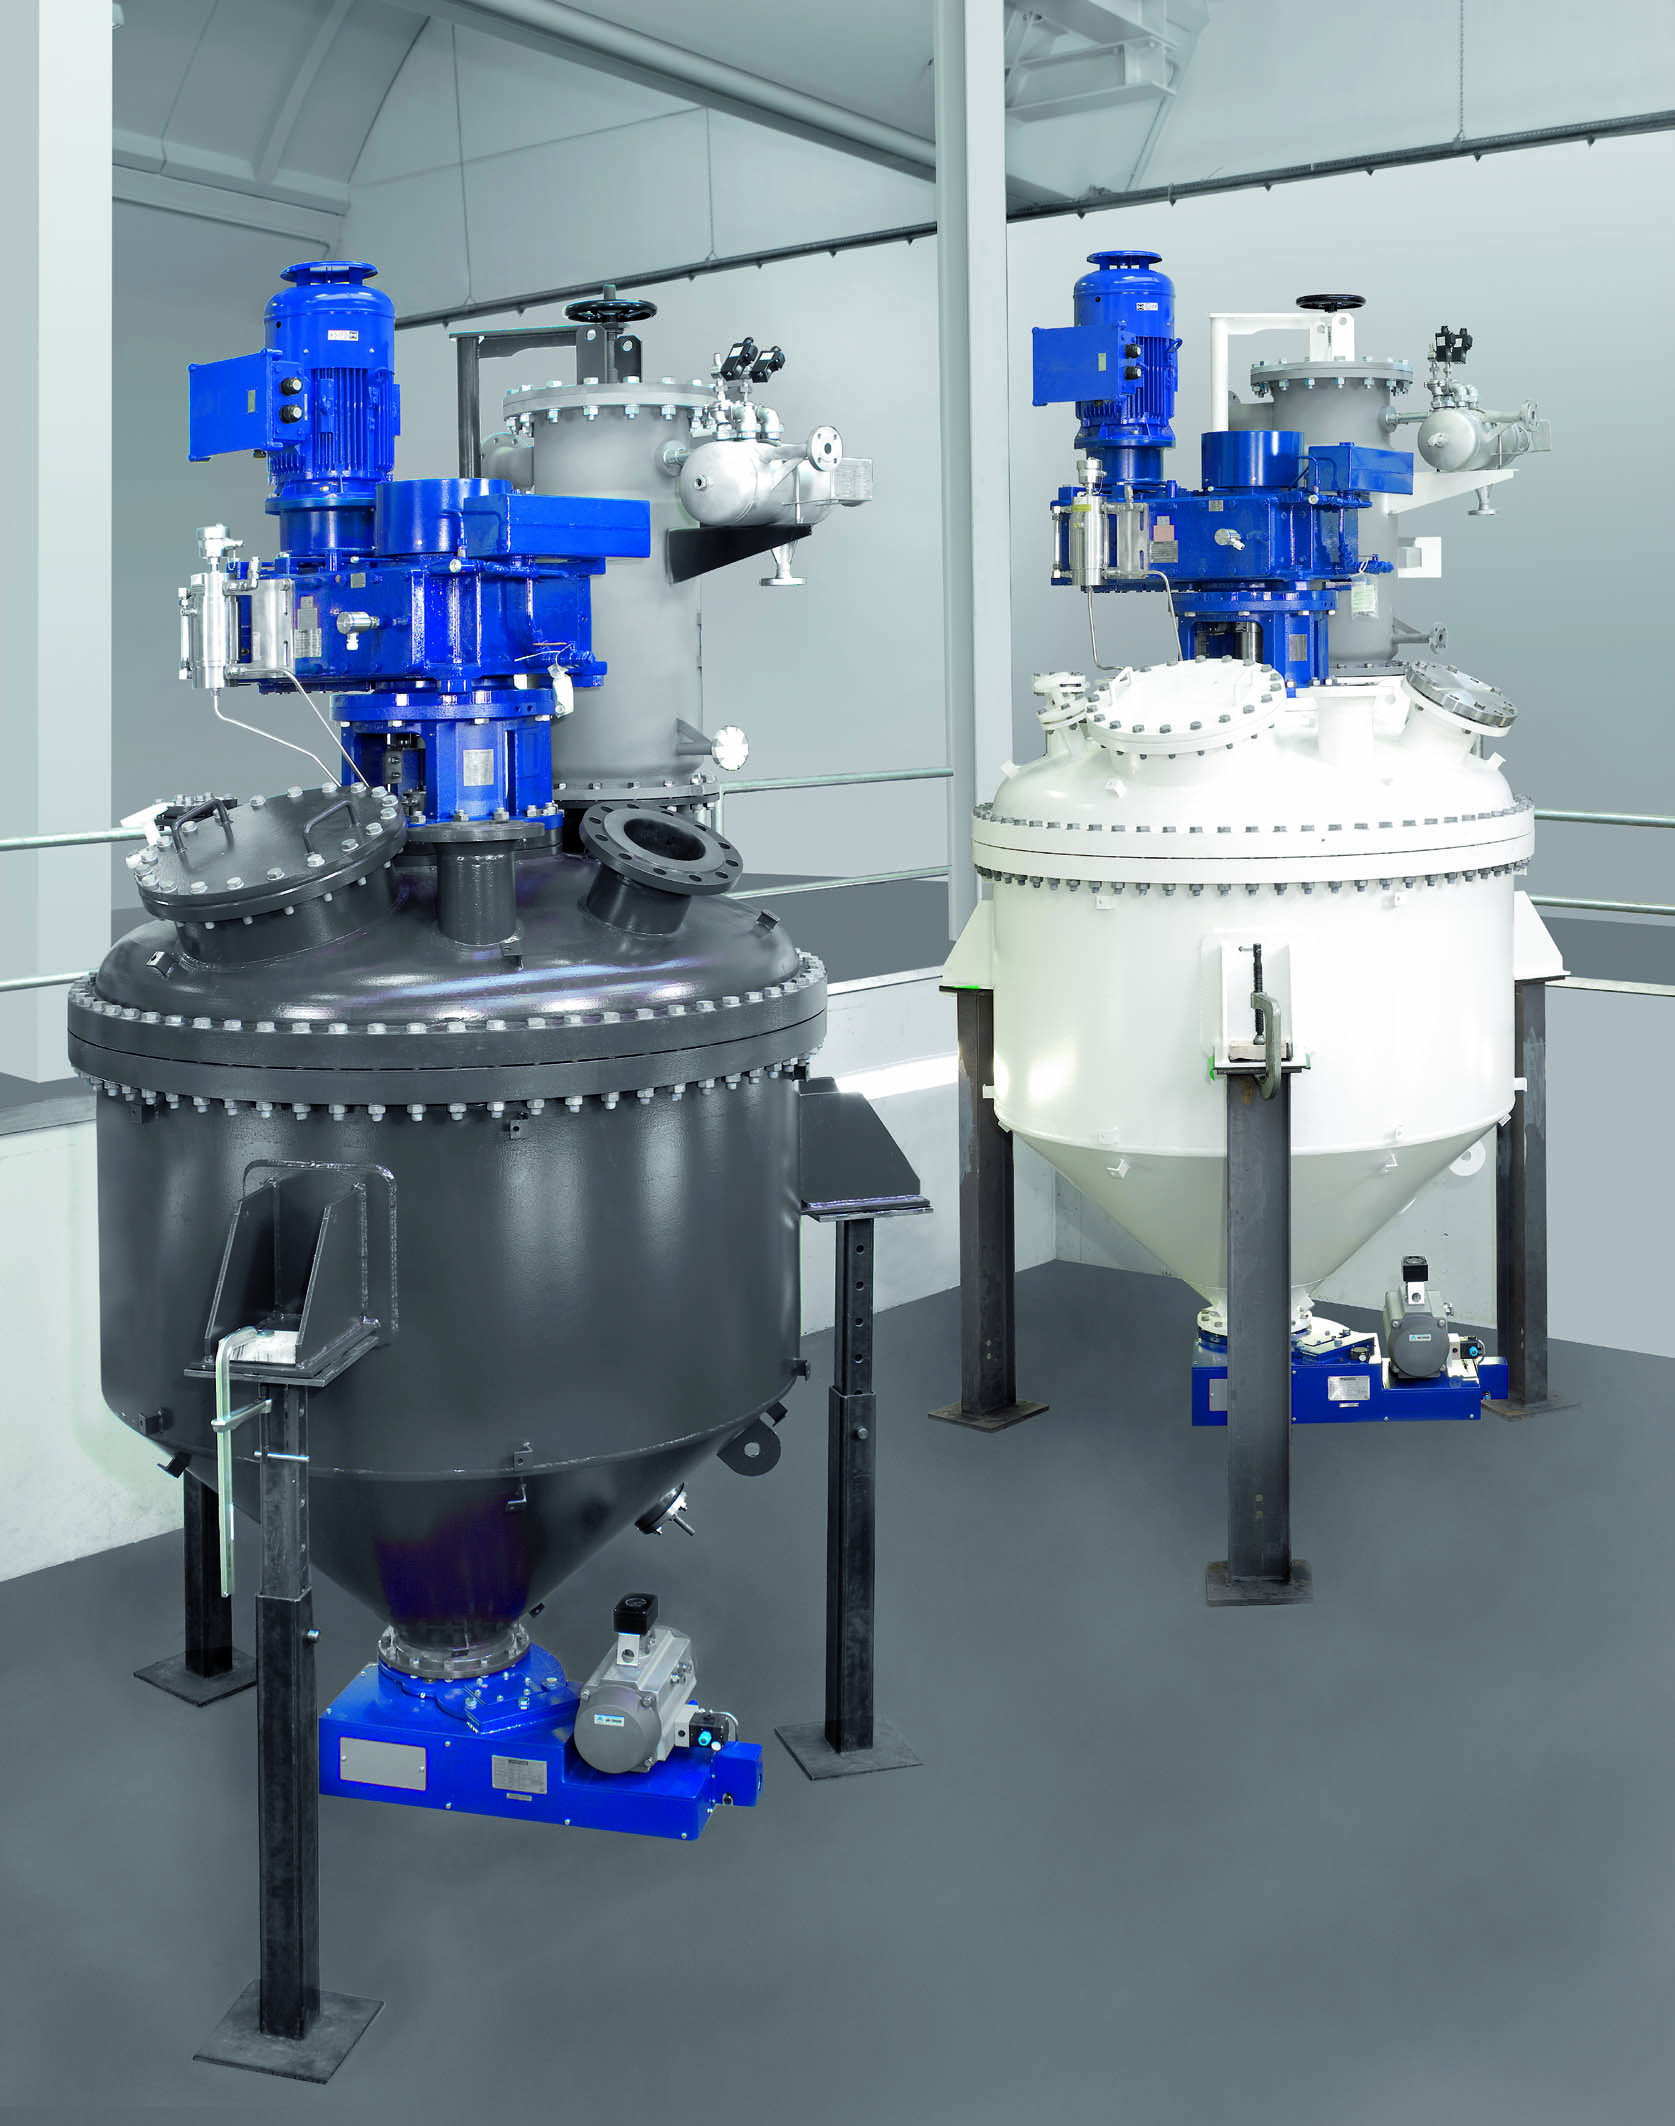 EKATO Mixer System for solids